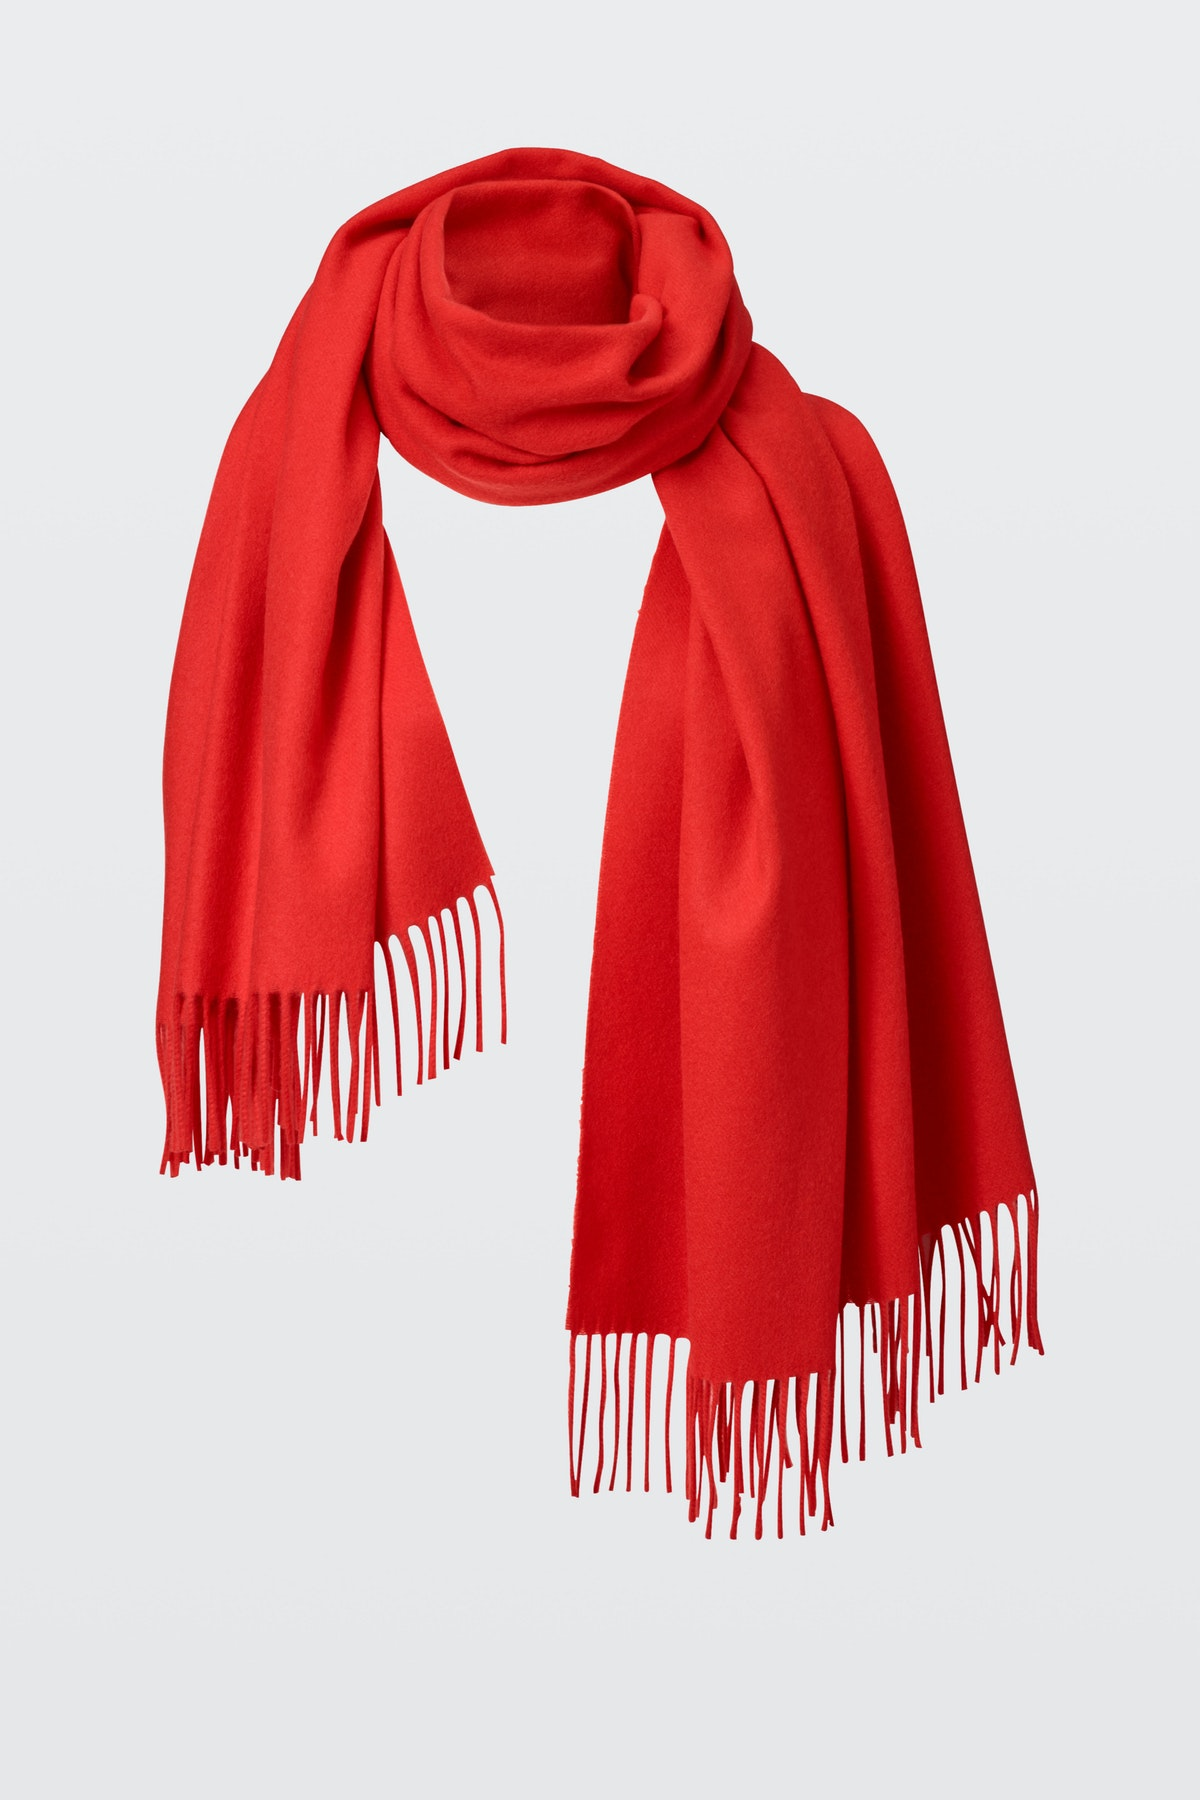 rot-small-accessories-dorothee-schumacher-183-152401-443-os-1.jpg